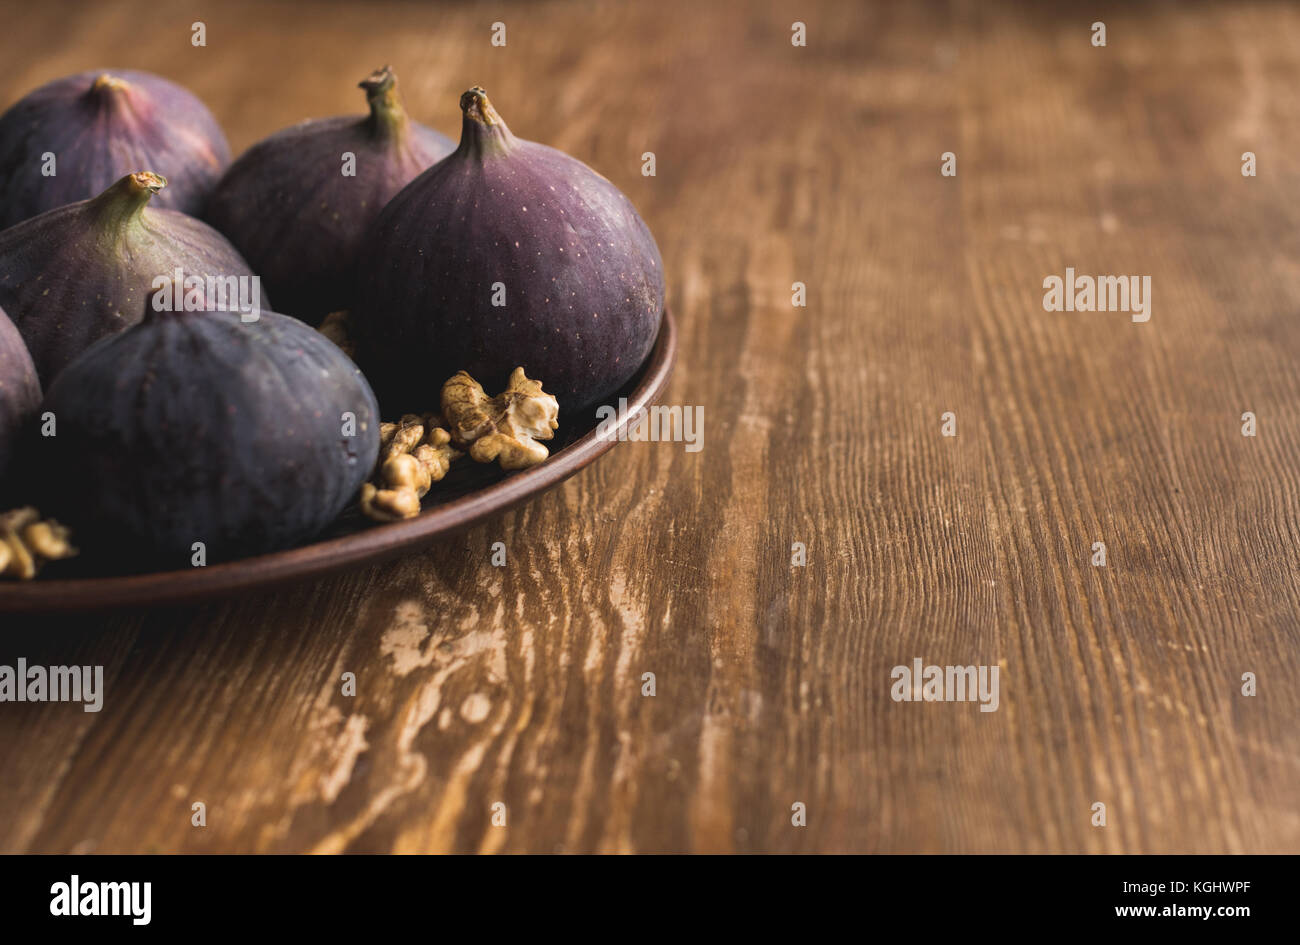 Bowl with raw figs - Stock Image